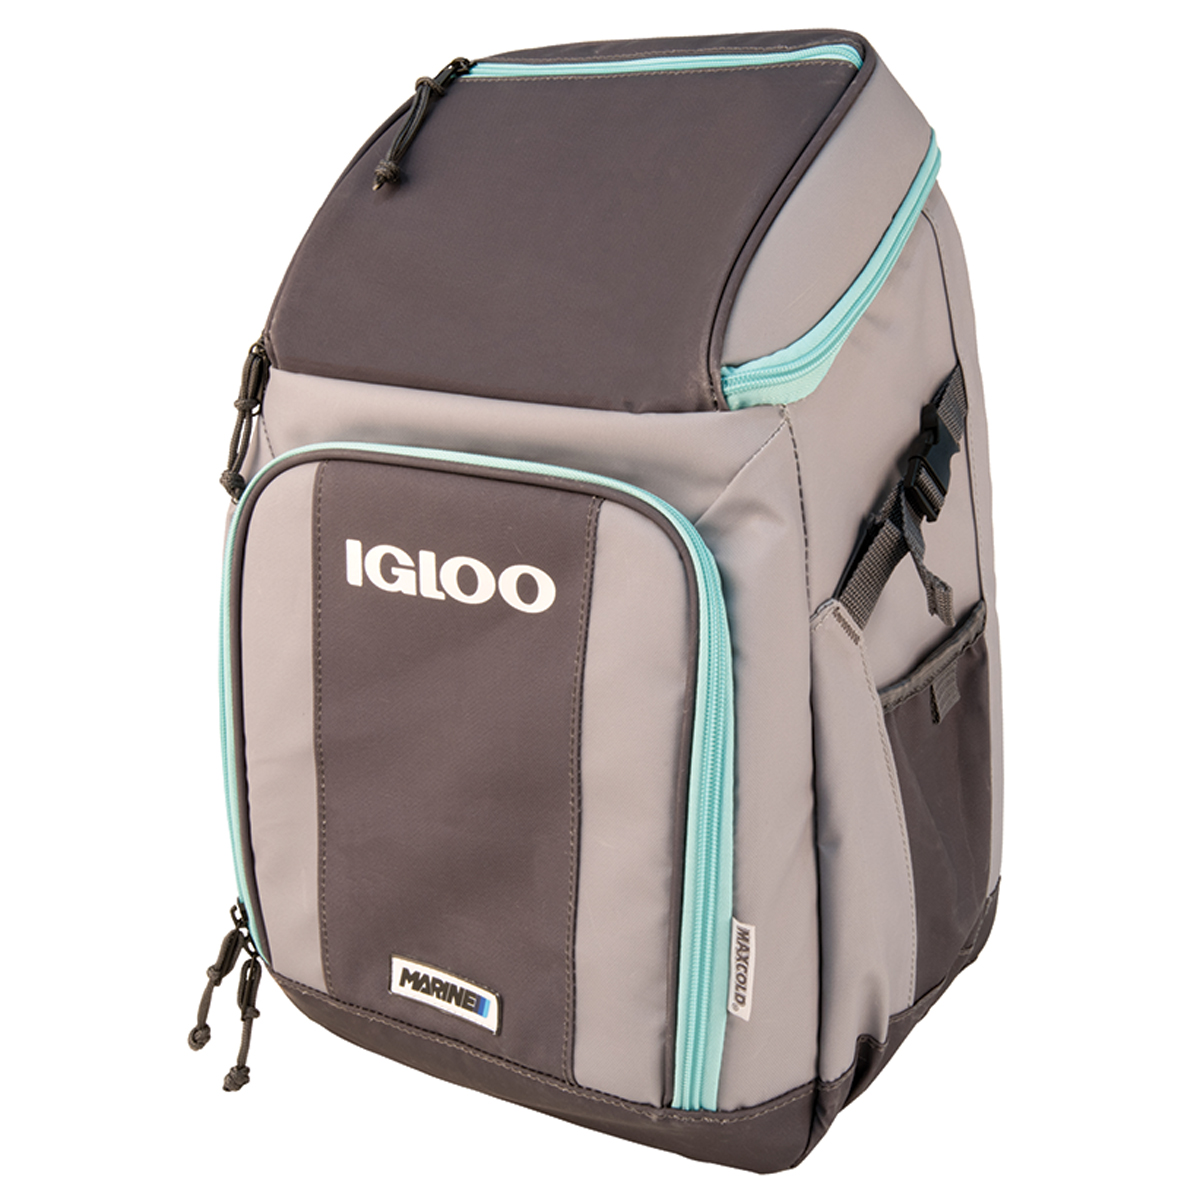 Outdoorsman Gizmo Backpack, Gray, swatch